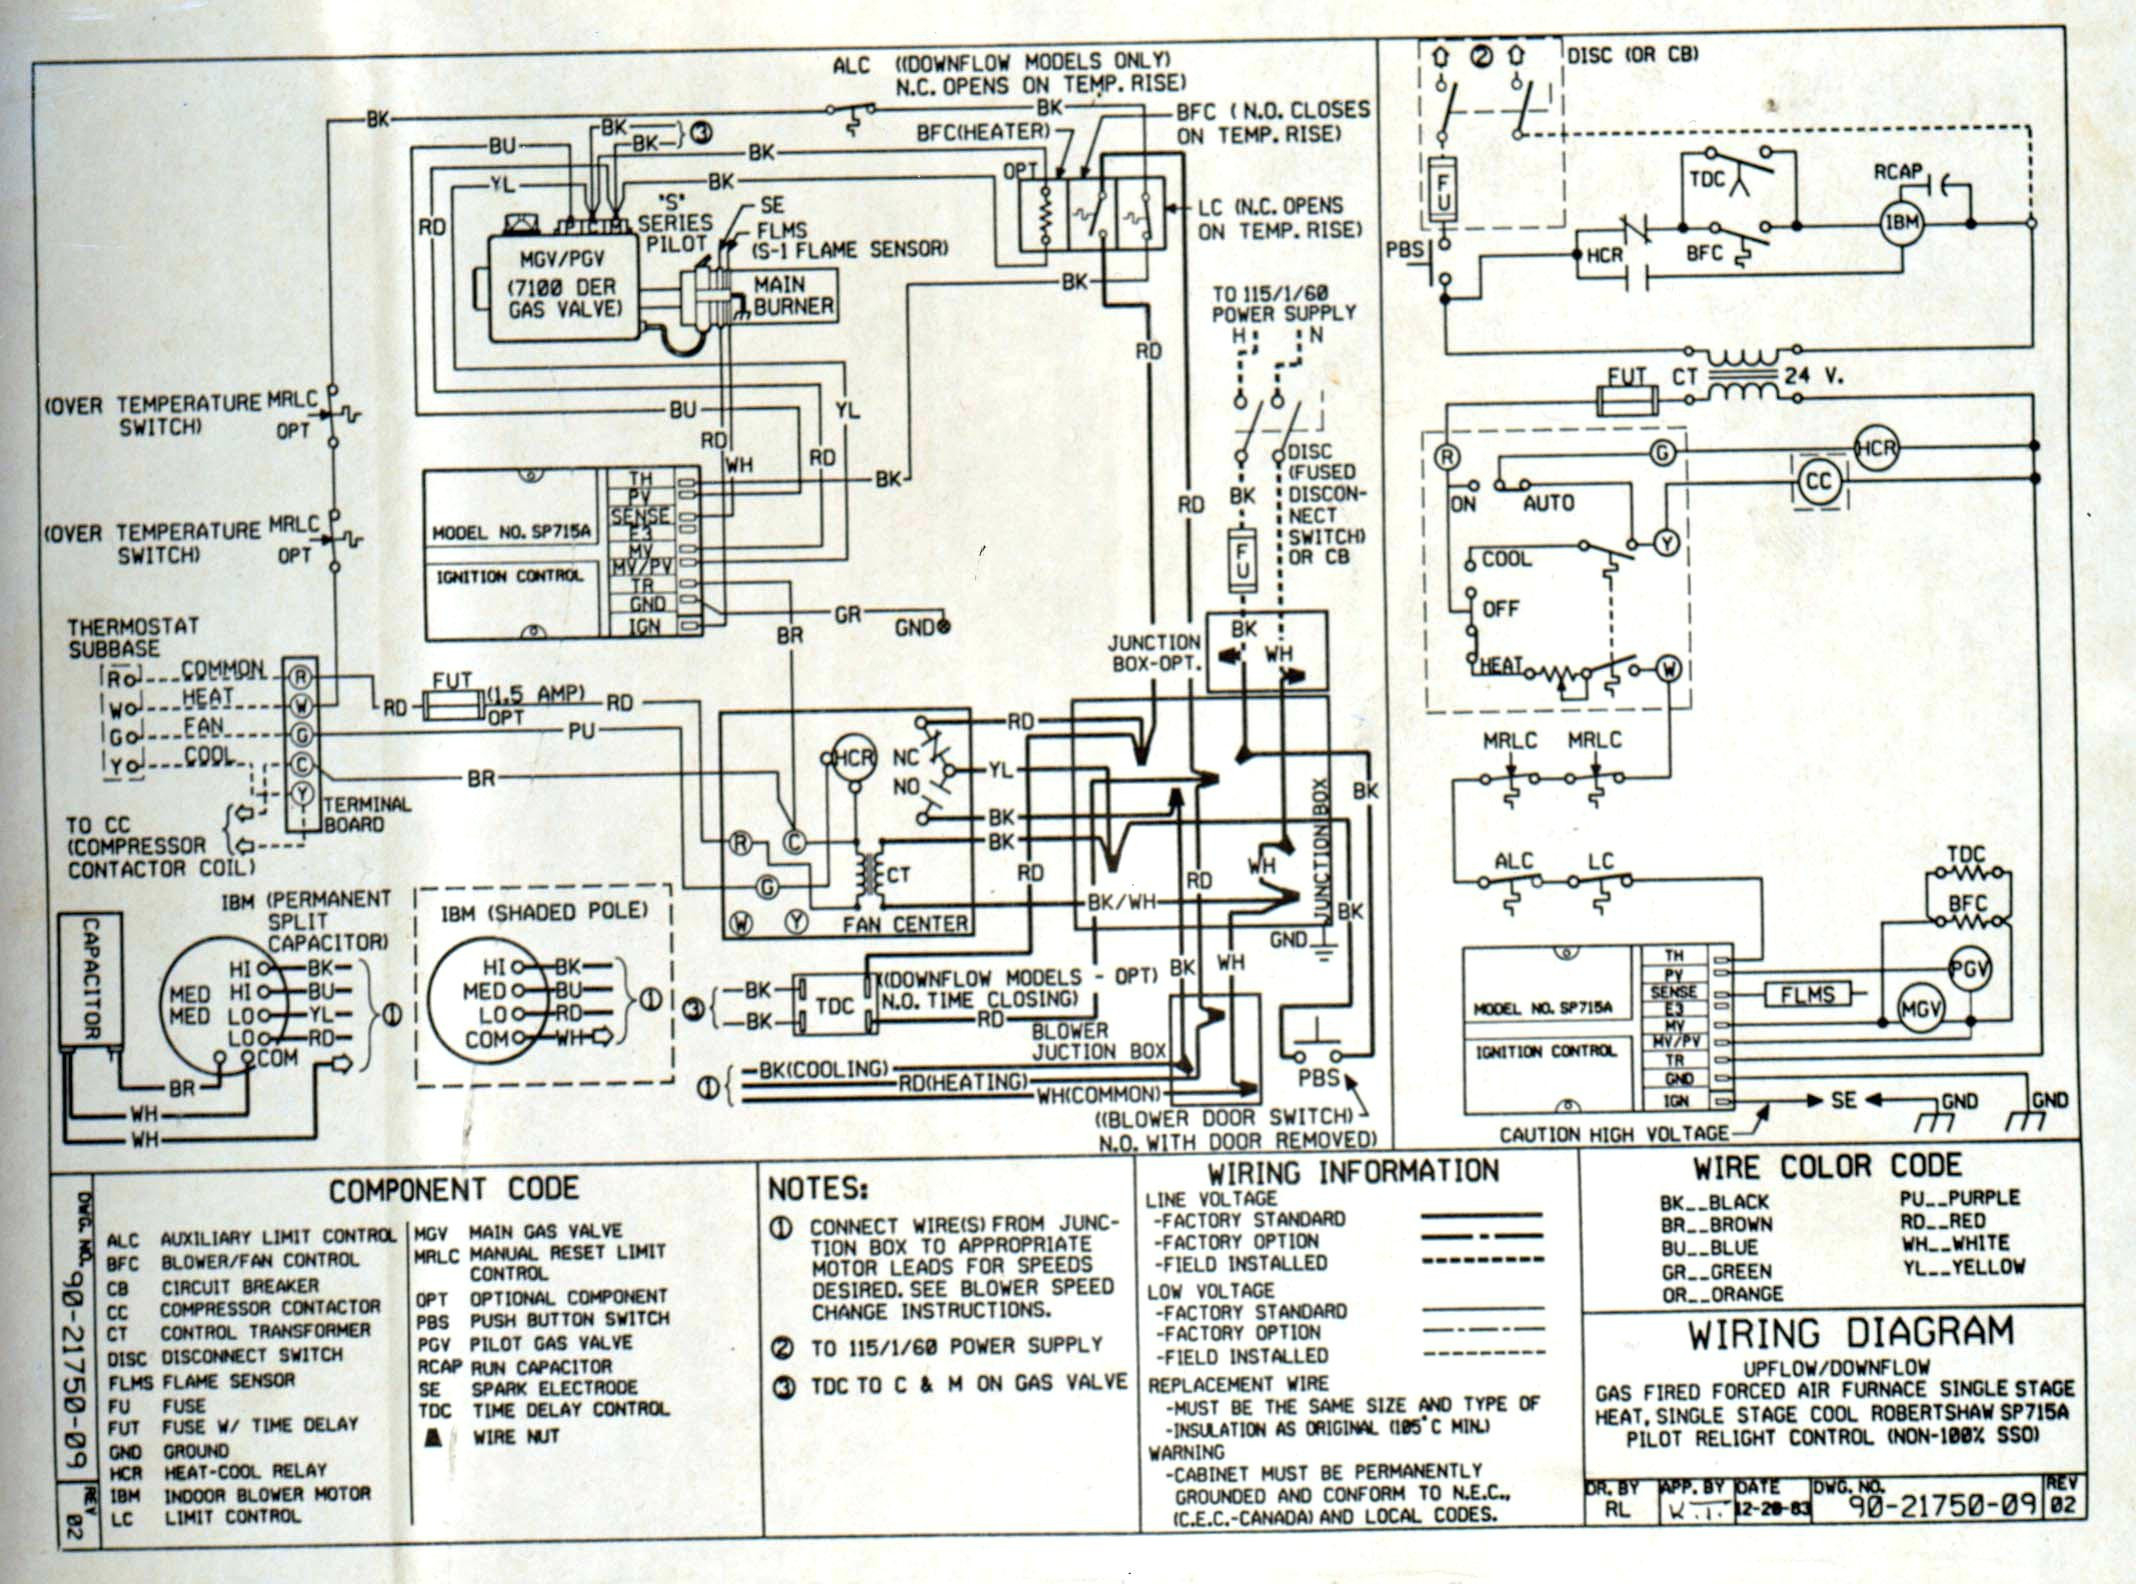 Electric Furnace Wiring Diagram - Wiring Diagrams for Gas Furnace Valid Refrence Wiring Diagram for Carrier Electric Furnace 14f